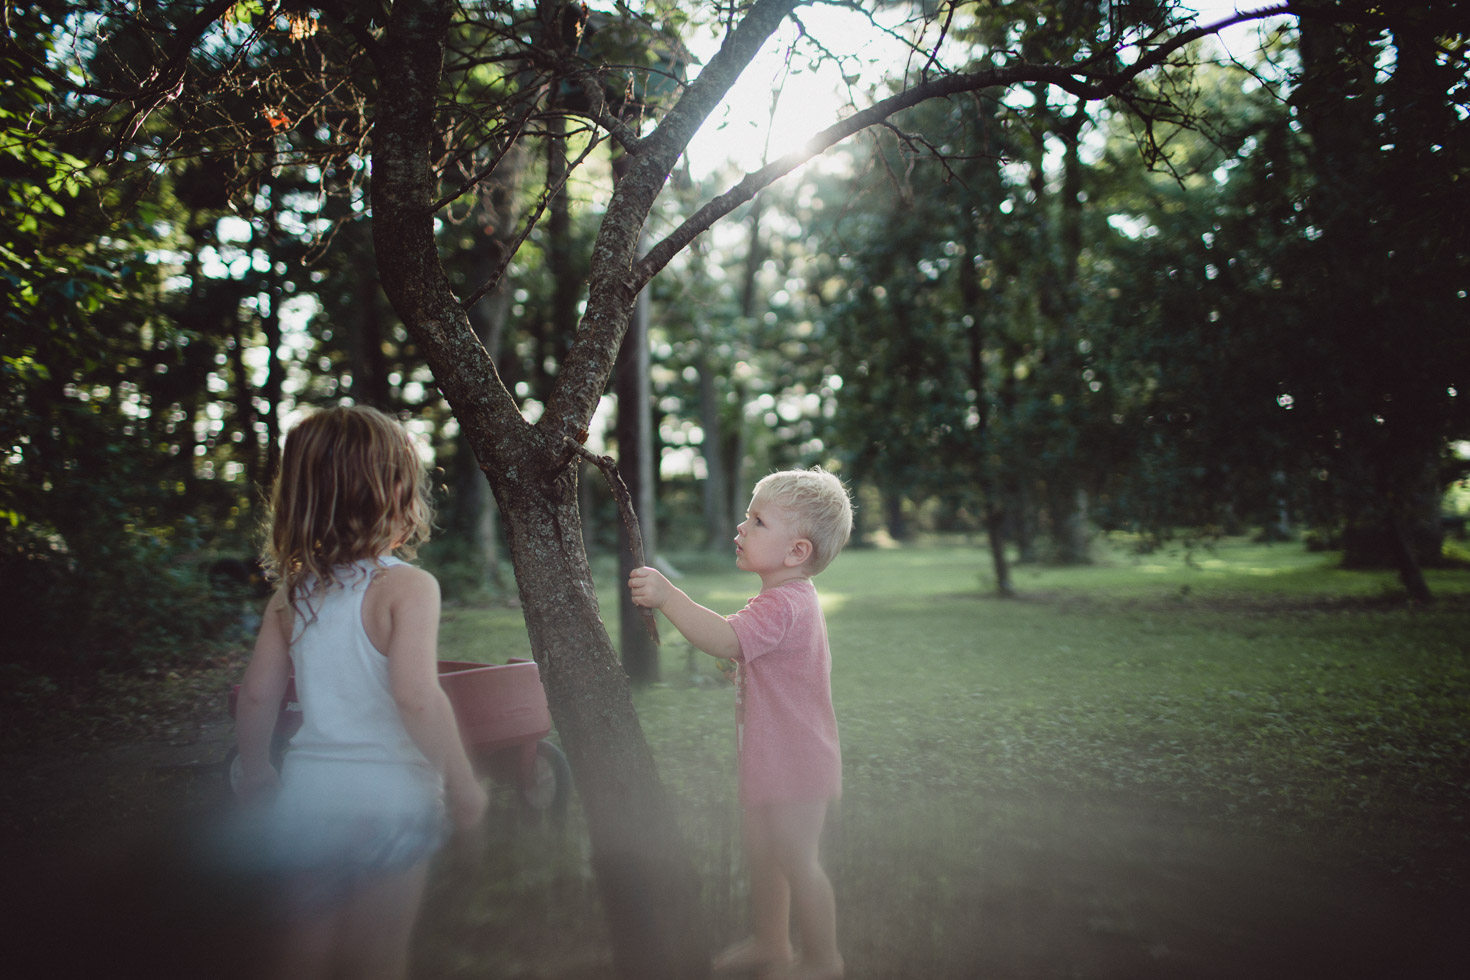 Children playing by tree in yard with sunset, backlit